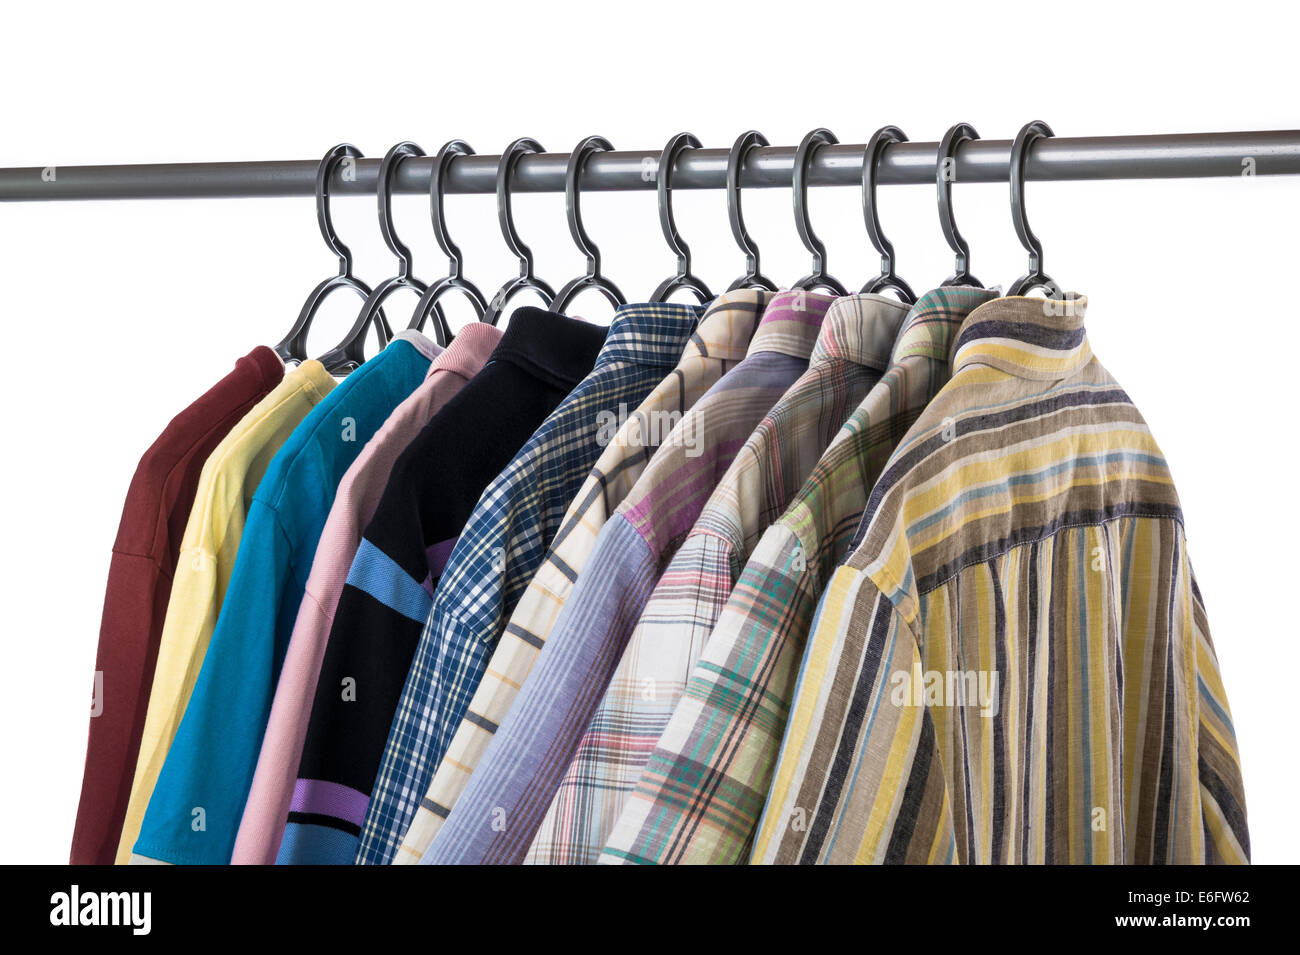 Collection of casual,short sleeved shirts, polo and tee shirts. - Stock Image